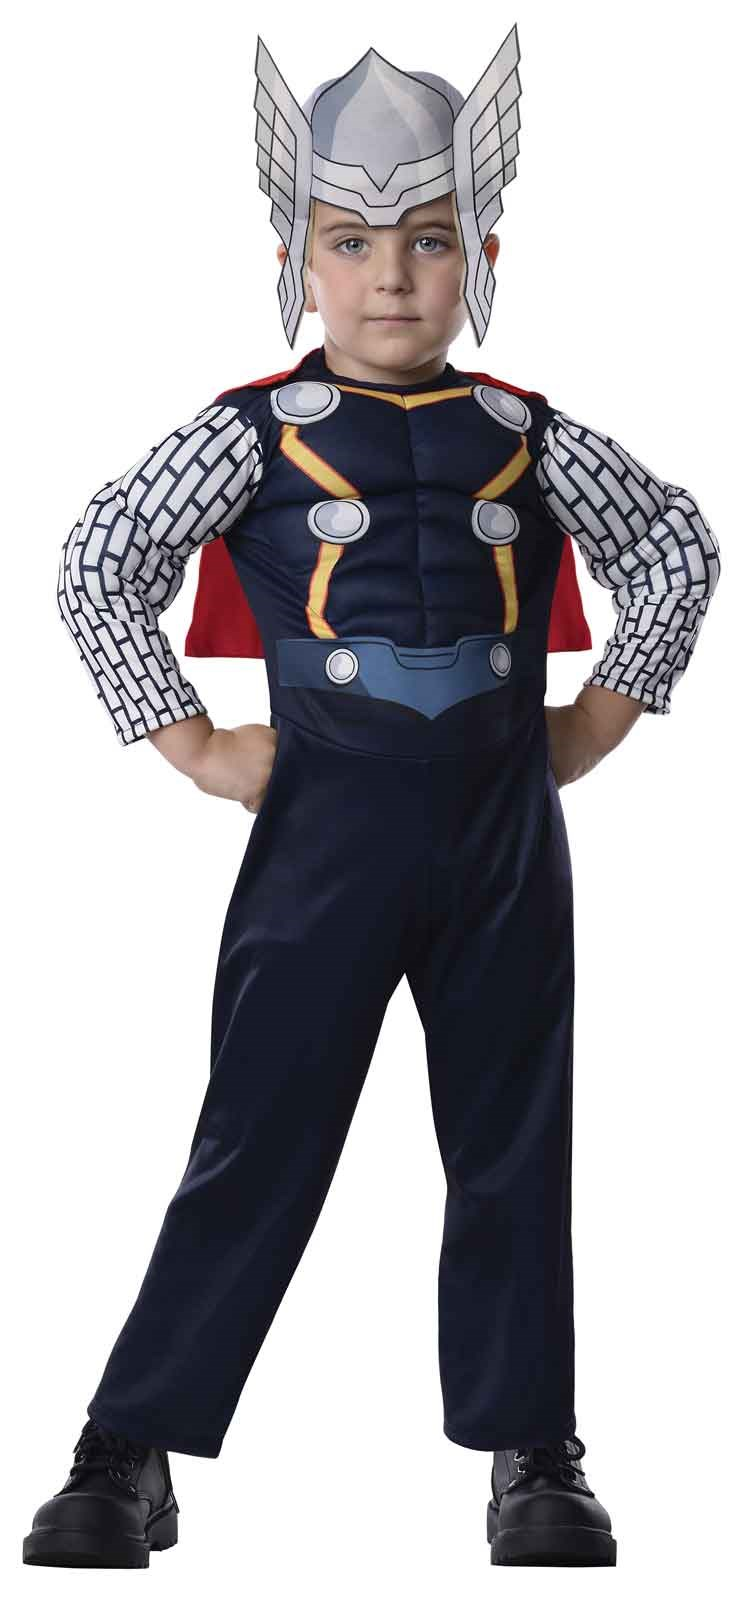 Avengers Assemble Thor Toddler Boy Costume Toddler (2-4)